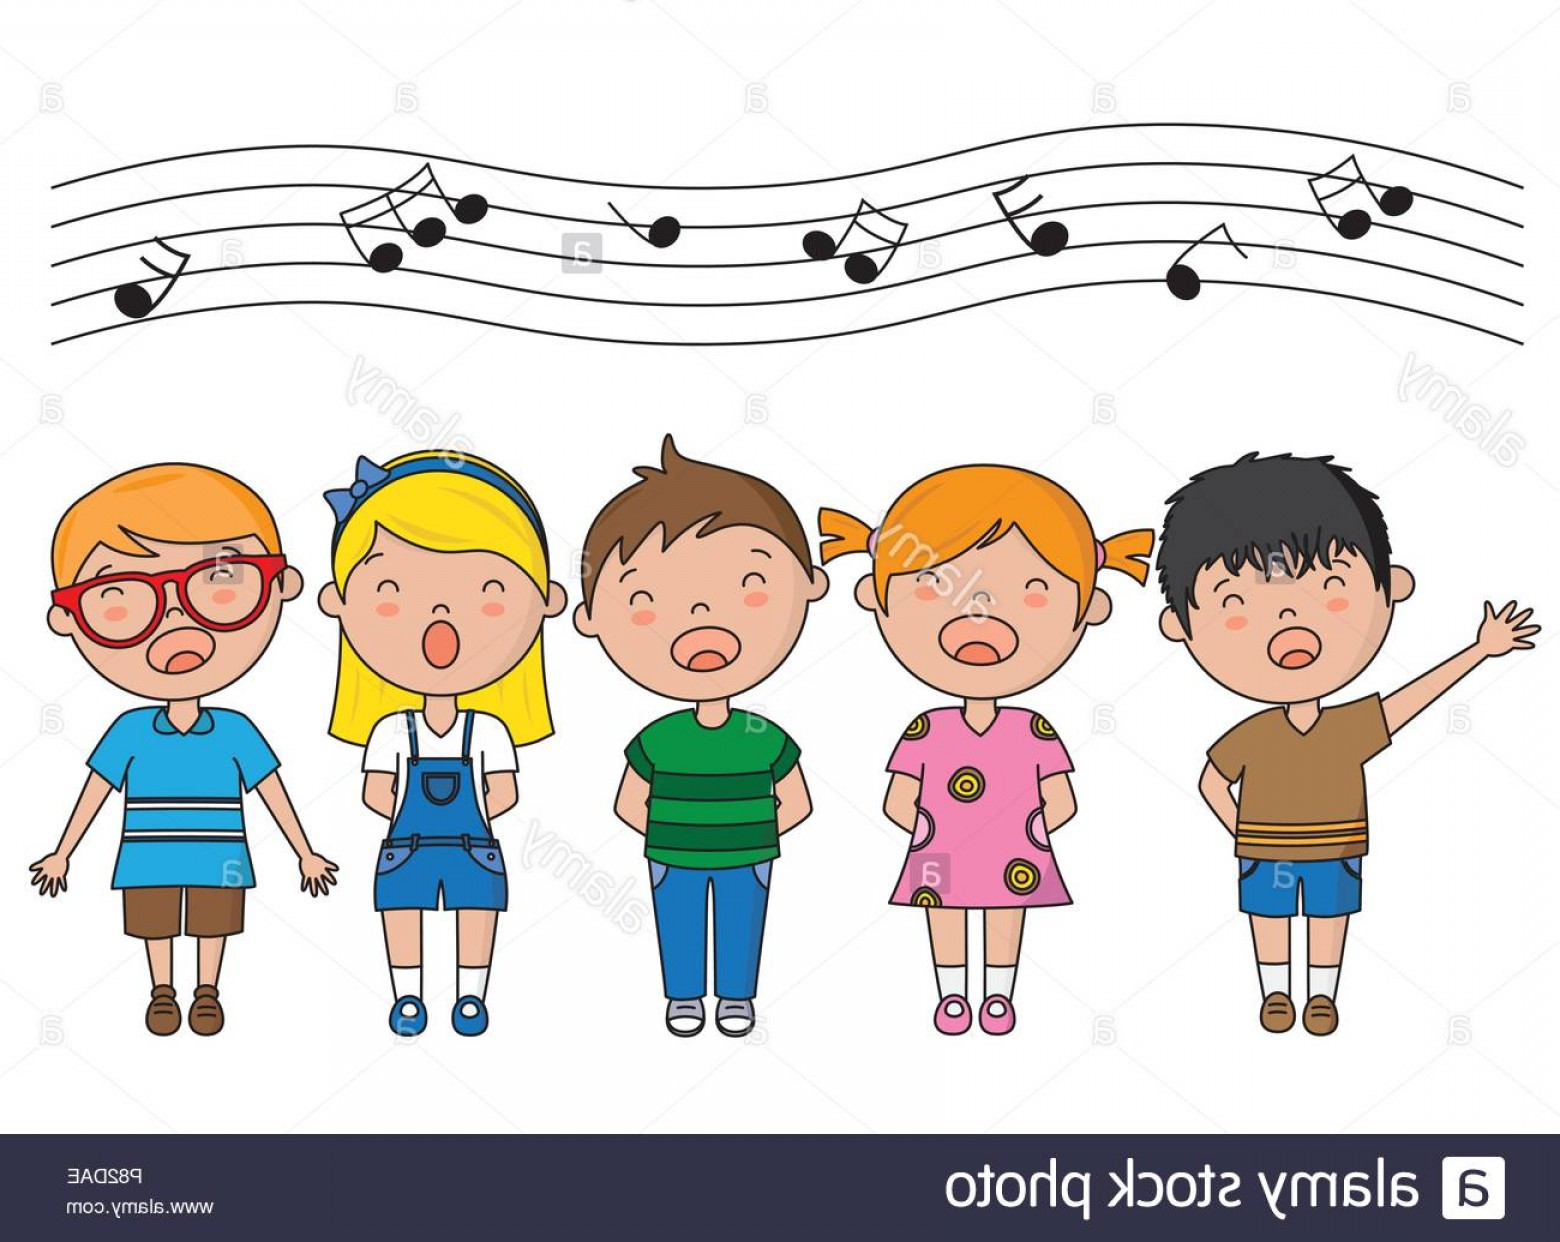 Singers Vector Art: Group Of Children Singing Vector Isolated Image